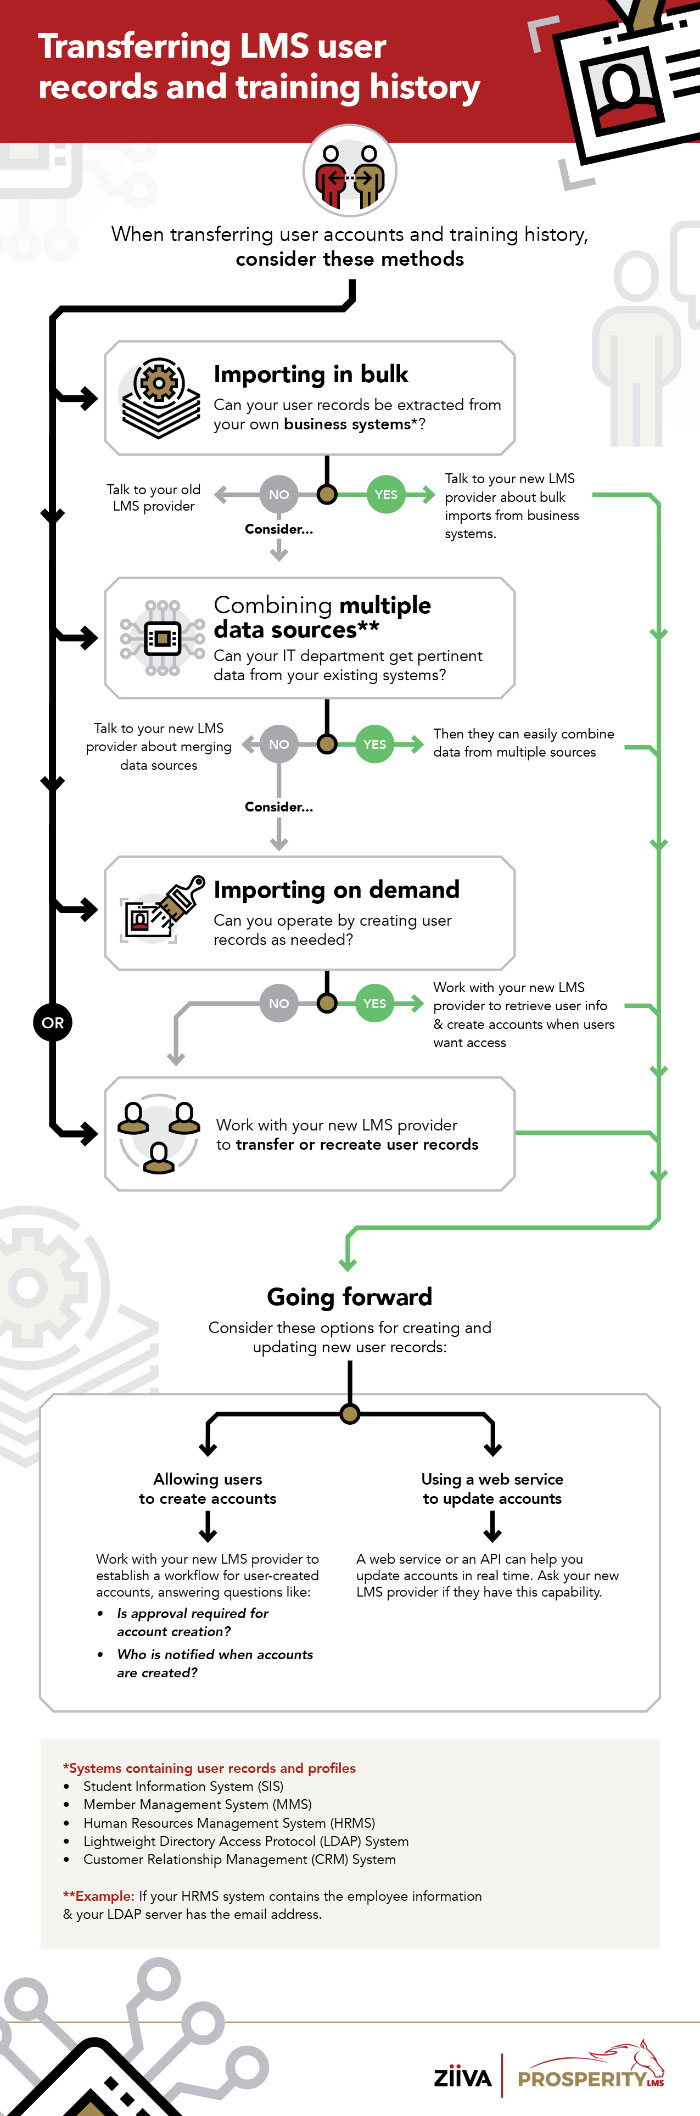 Tranferring old user records infographic